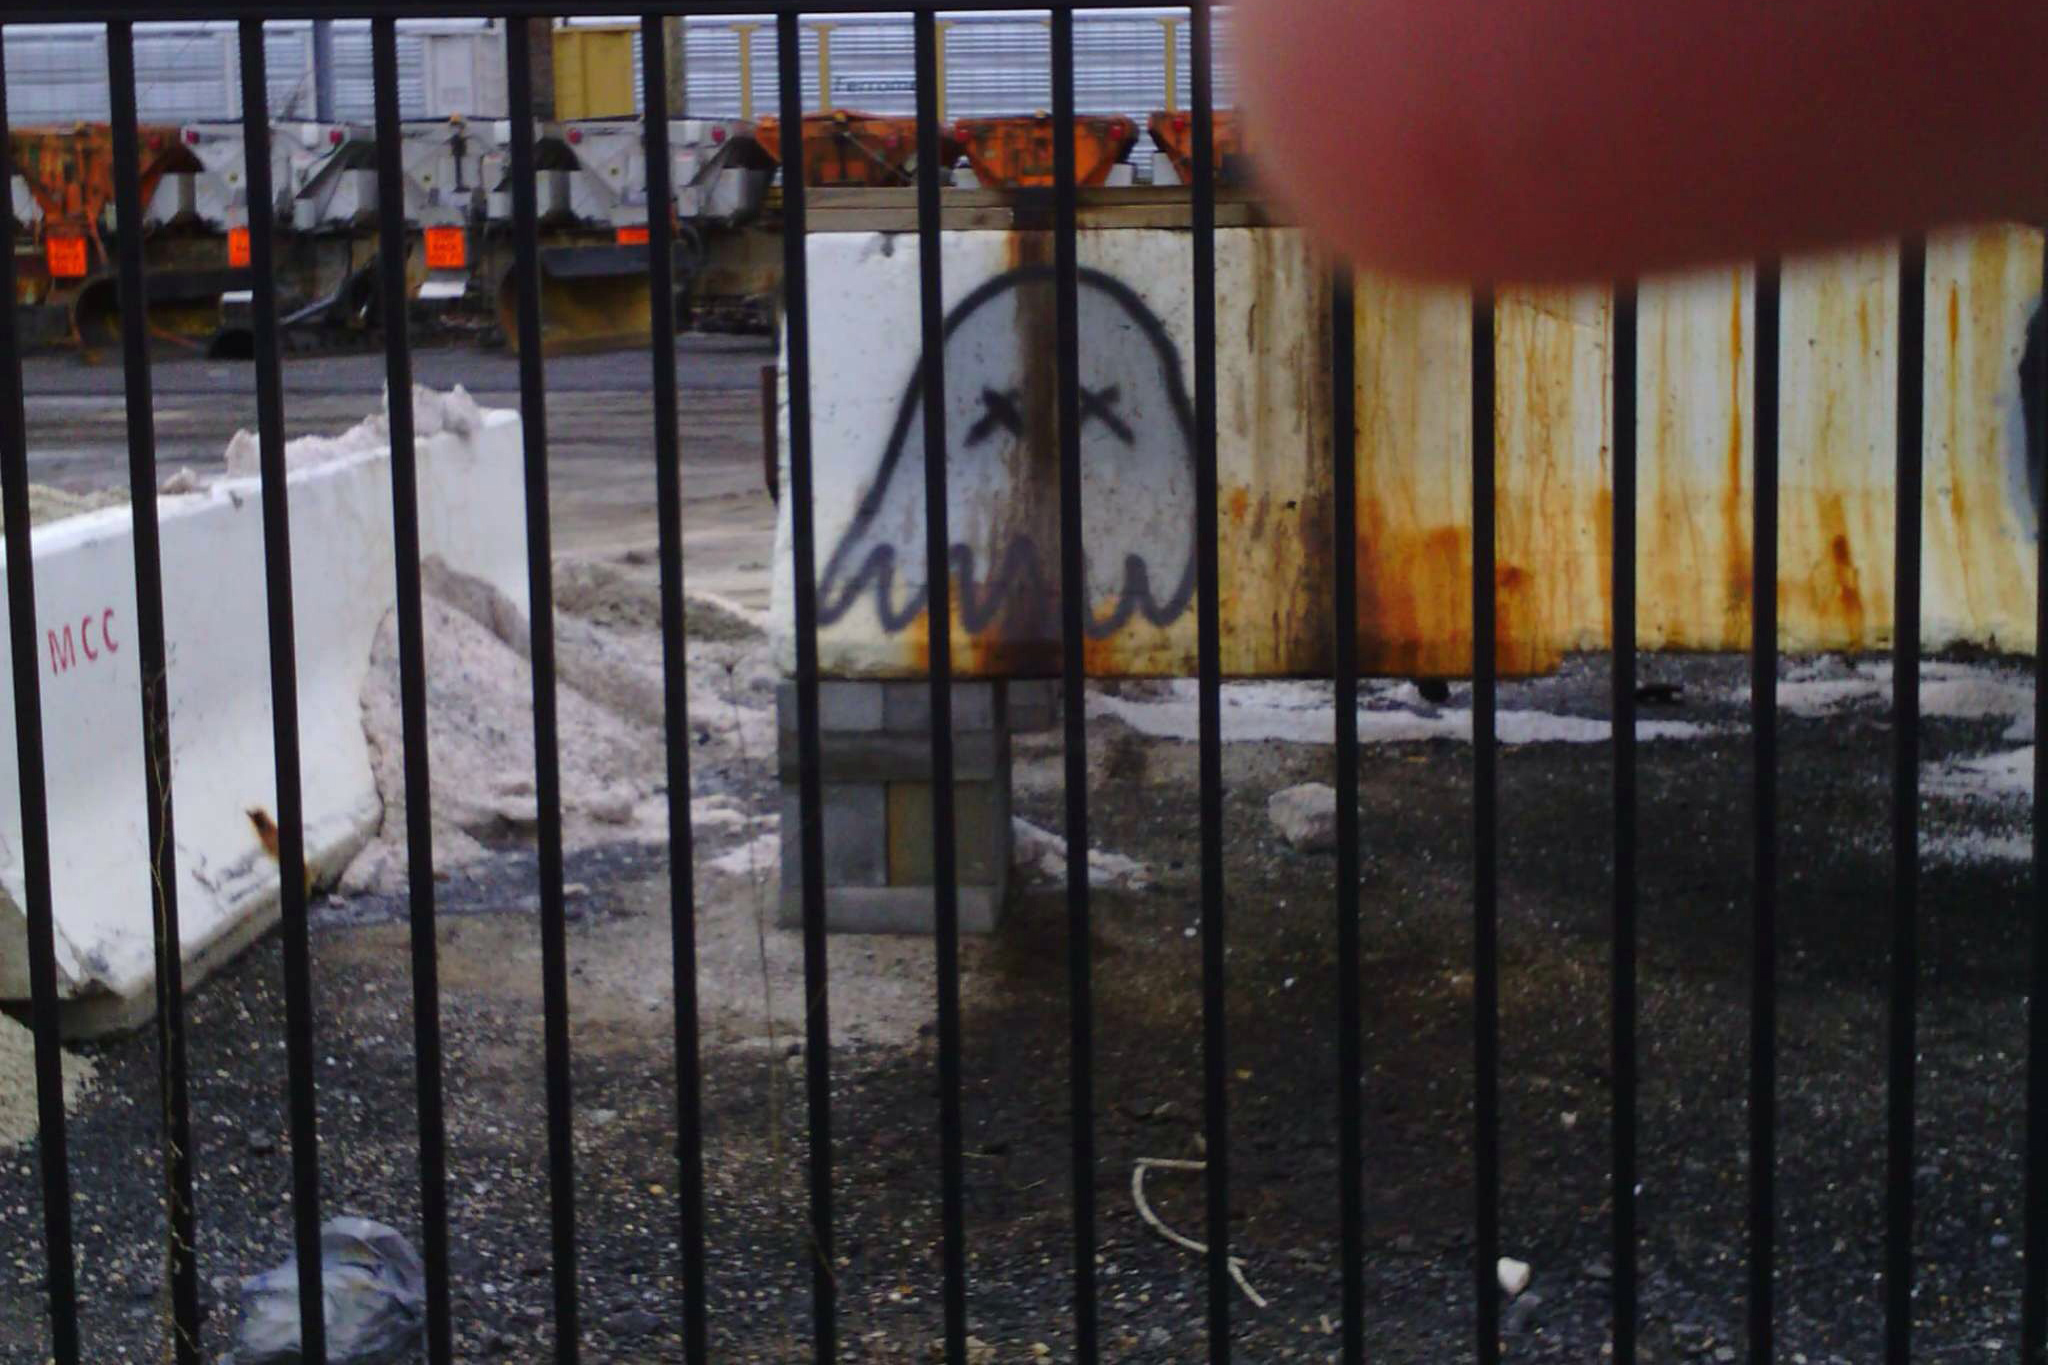 While wearing the Narrative Clip outside, O'Neill captured some graffiti on a walk.